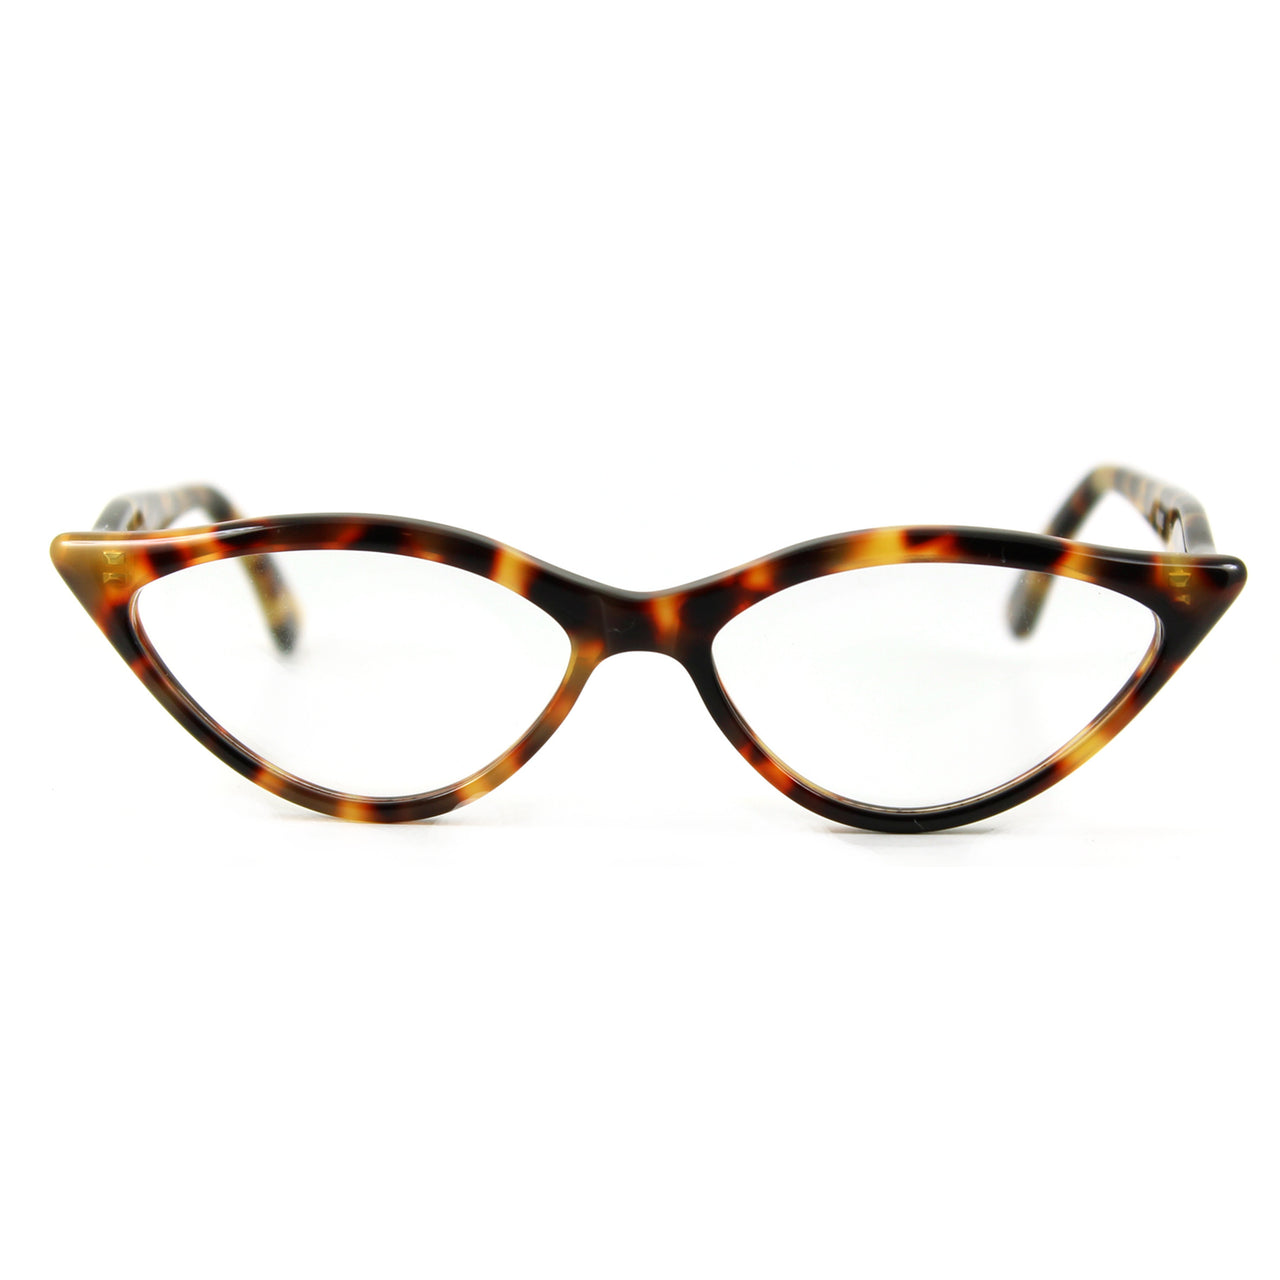 Retropeepers Amelie, 50's style cat eye glasses in tortoiseshell